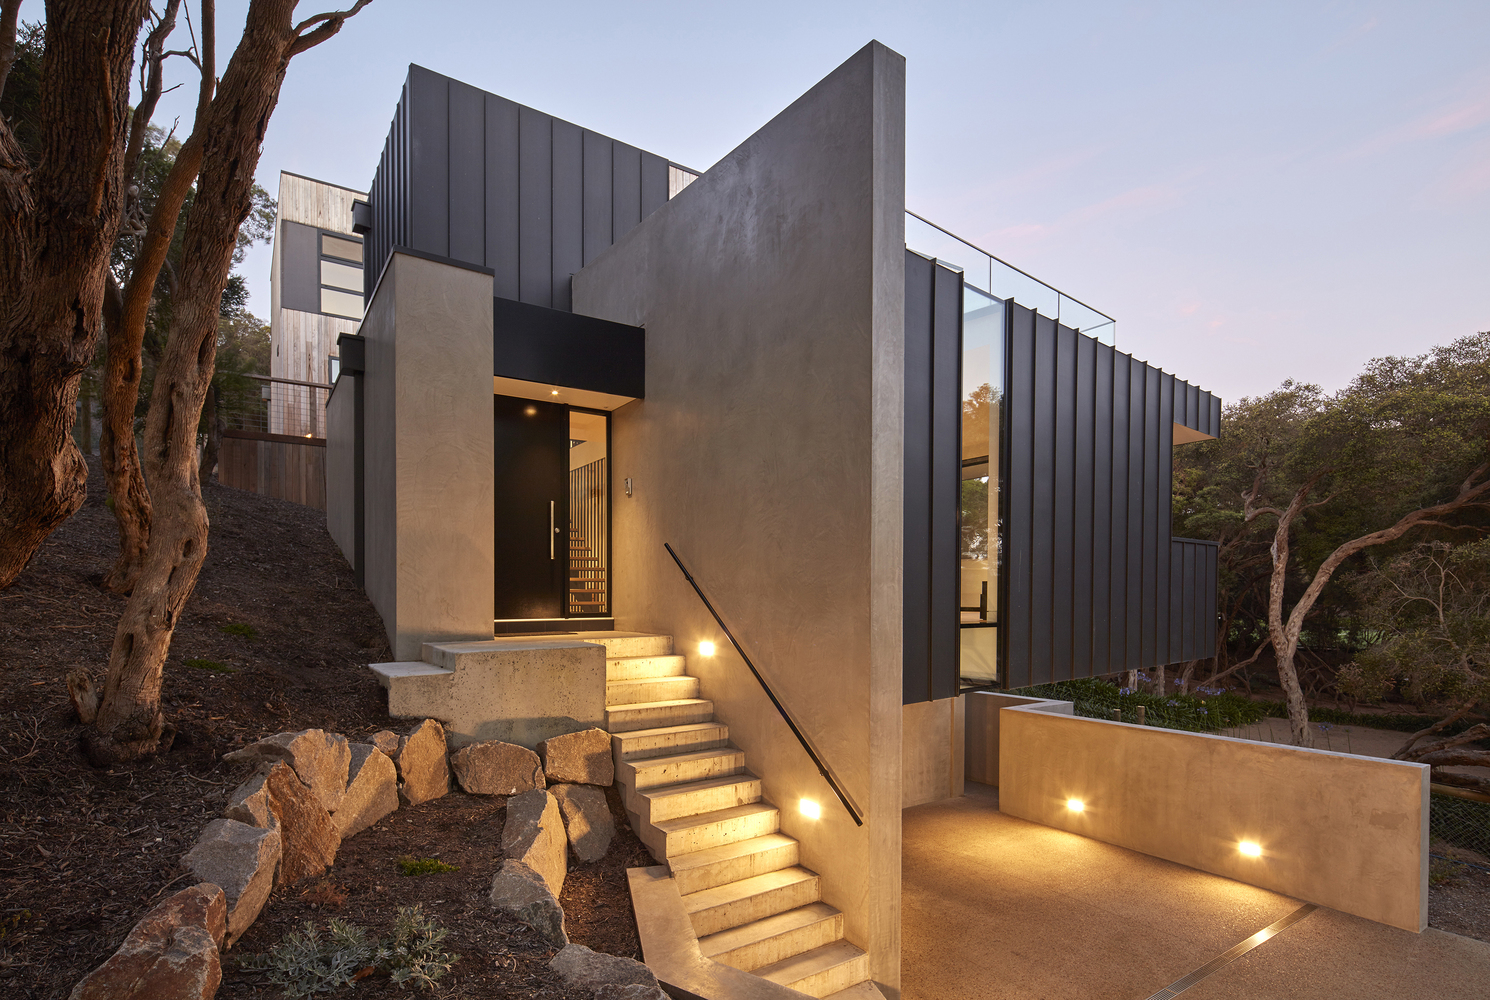 Beach House by DX Architects - Victoria, Australia - Photographed by Aaron Pocock - Australia Design & Architecture - Image 7